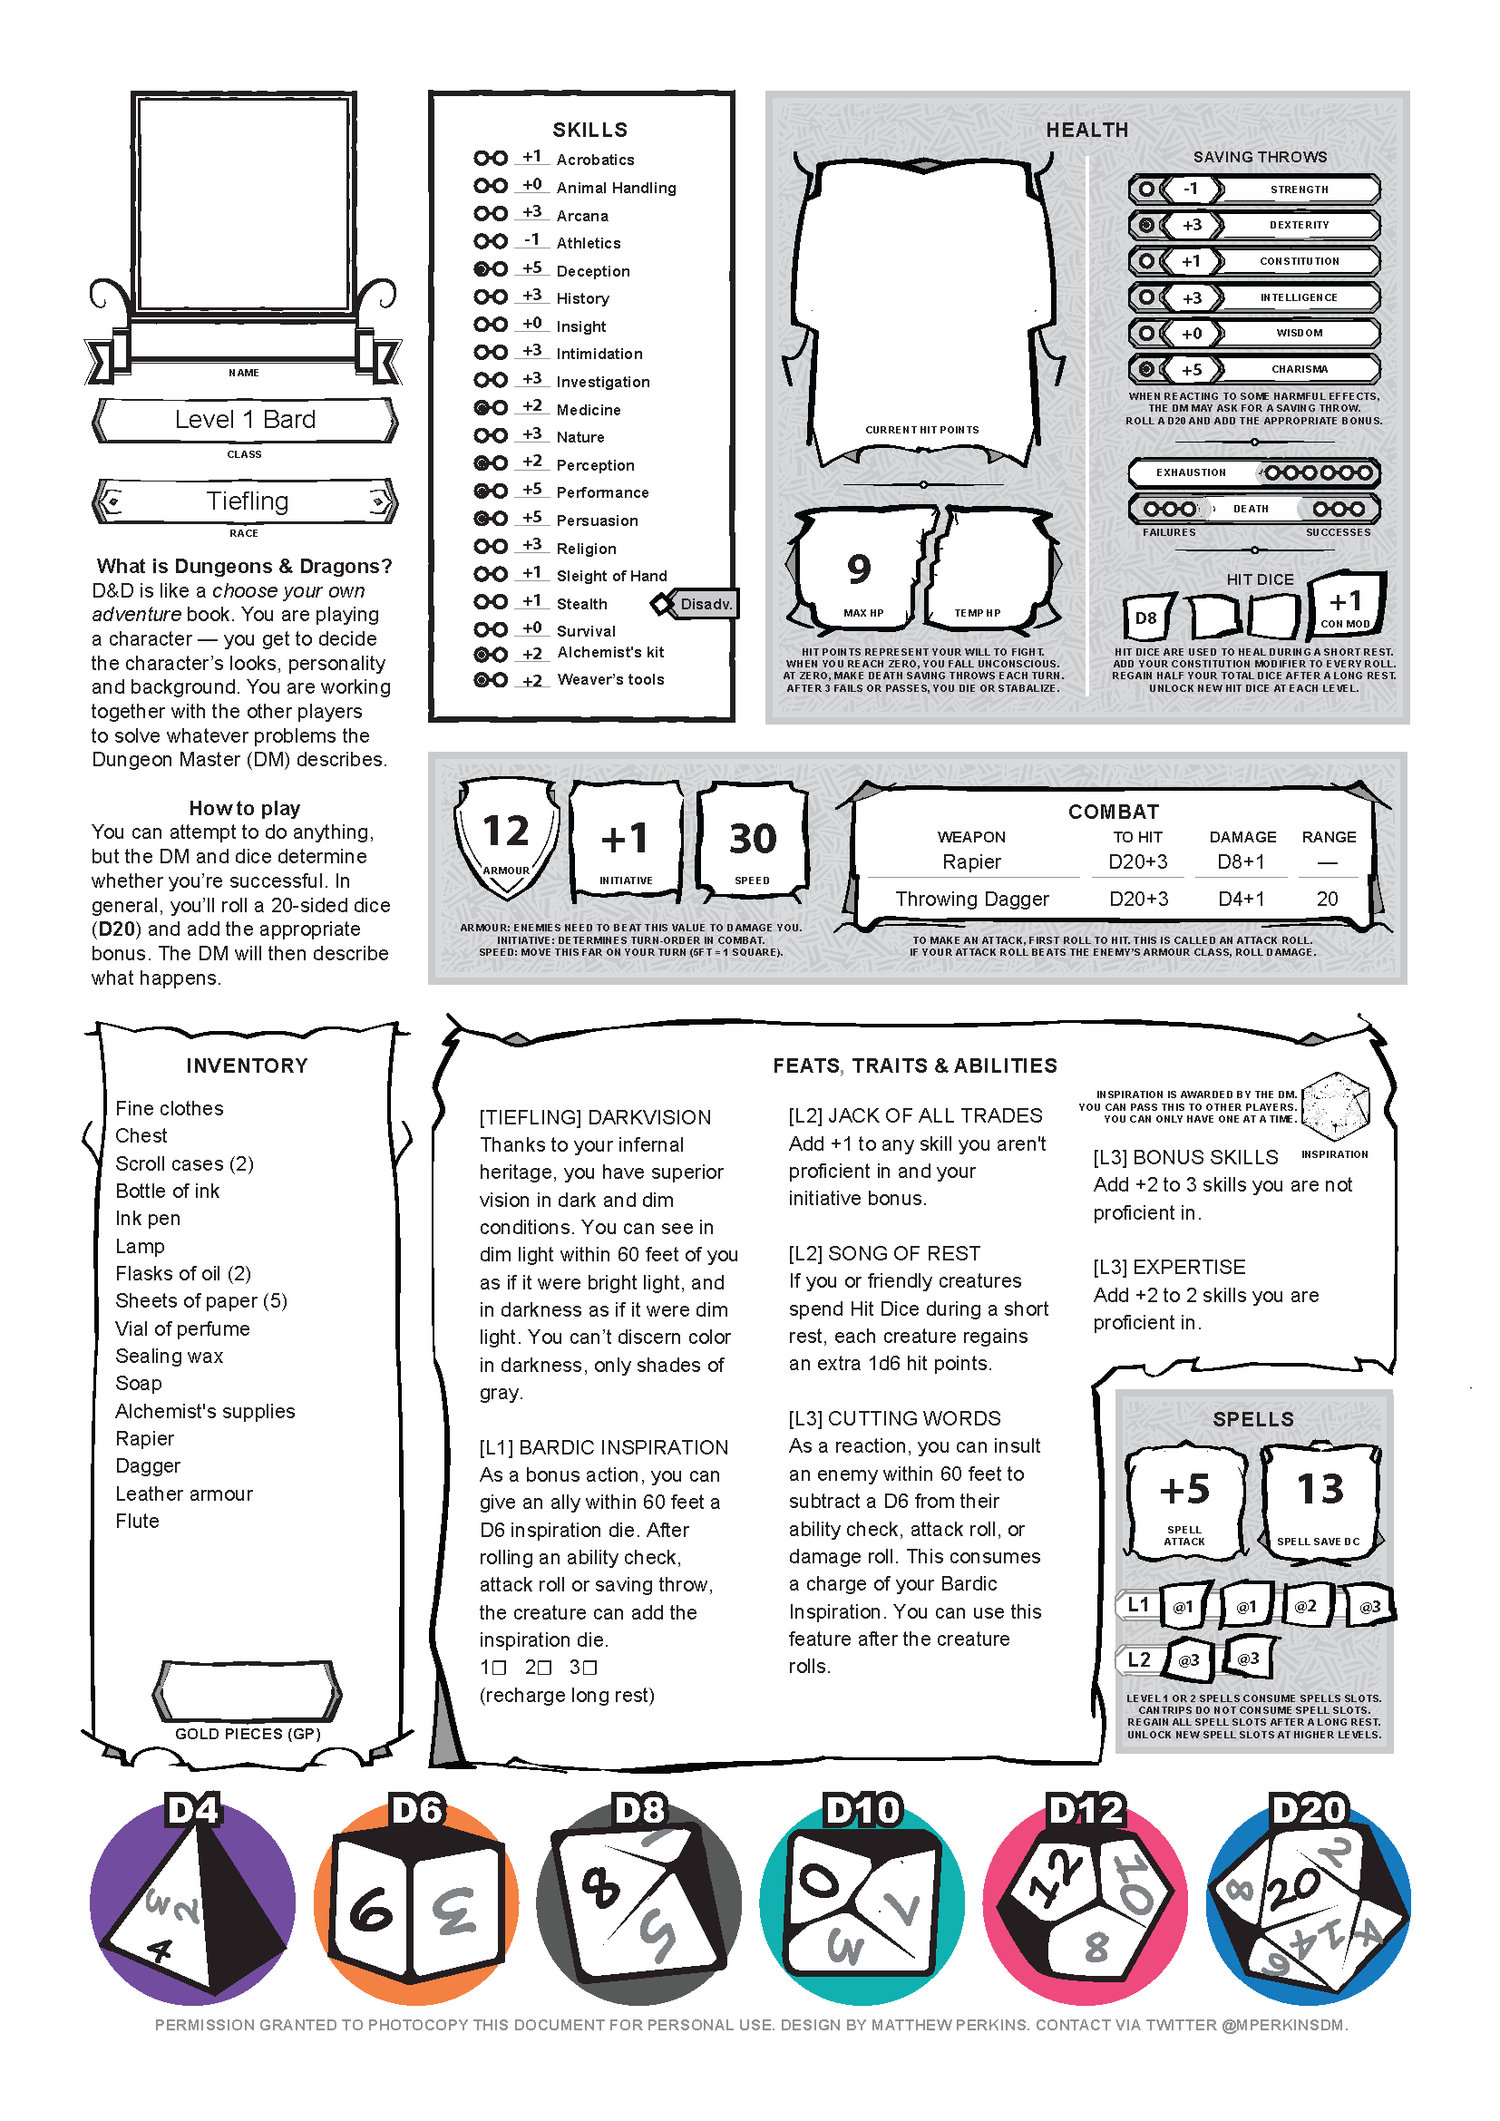 Character Sheets: Lessons in Learning — Matthew Perkins